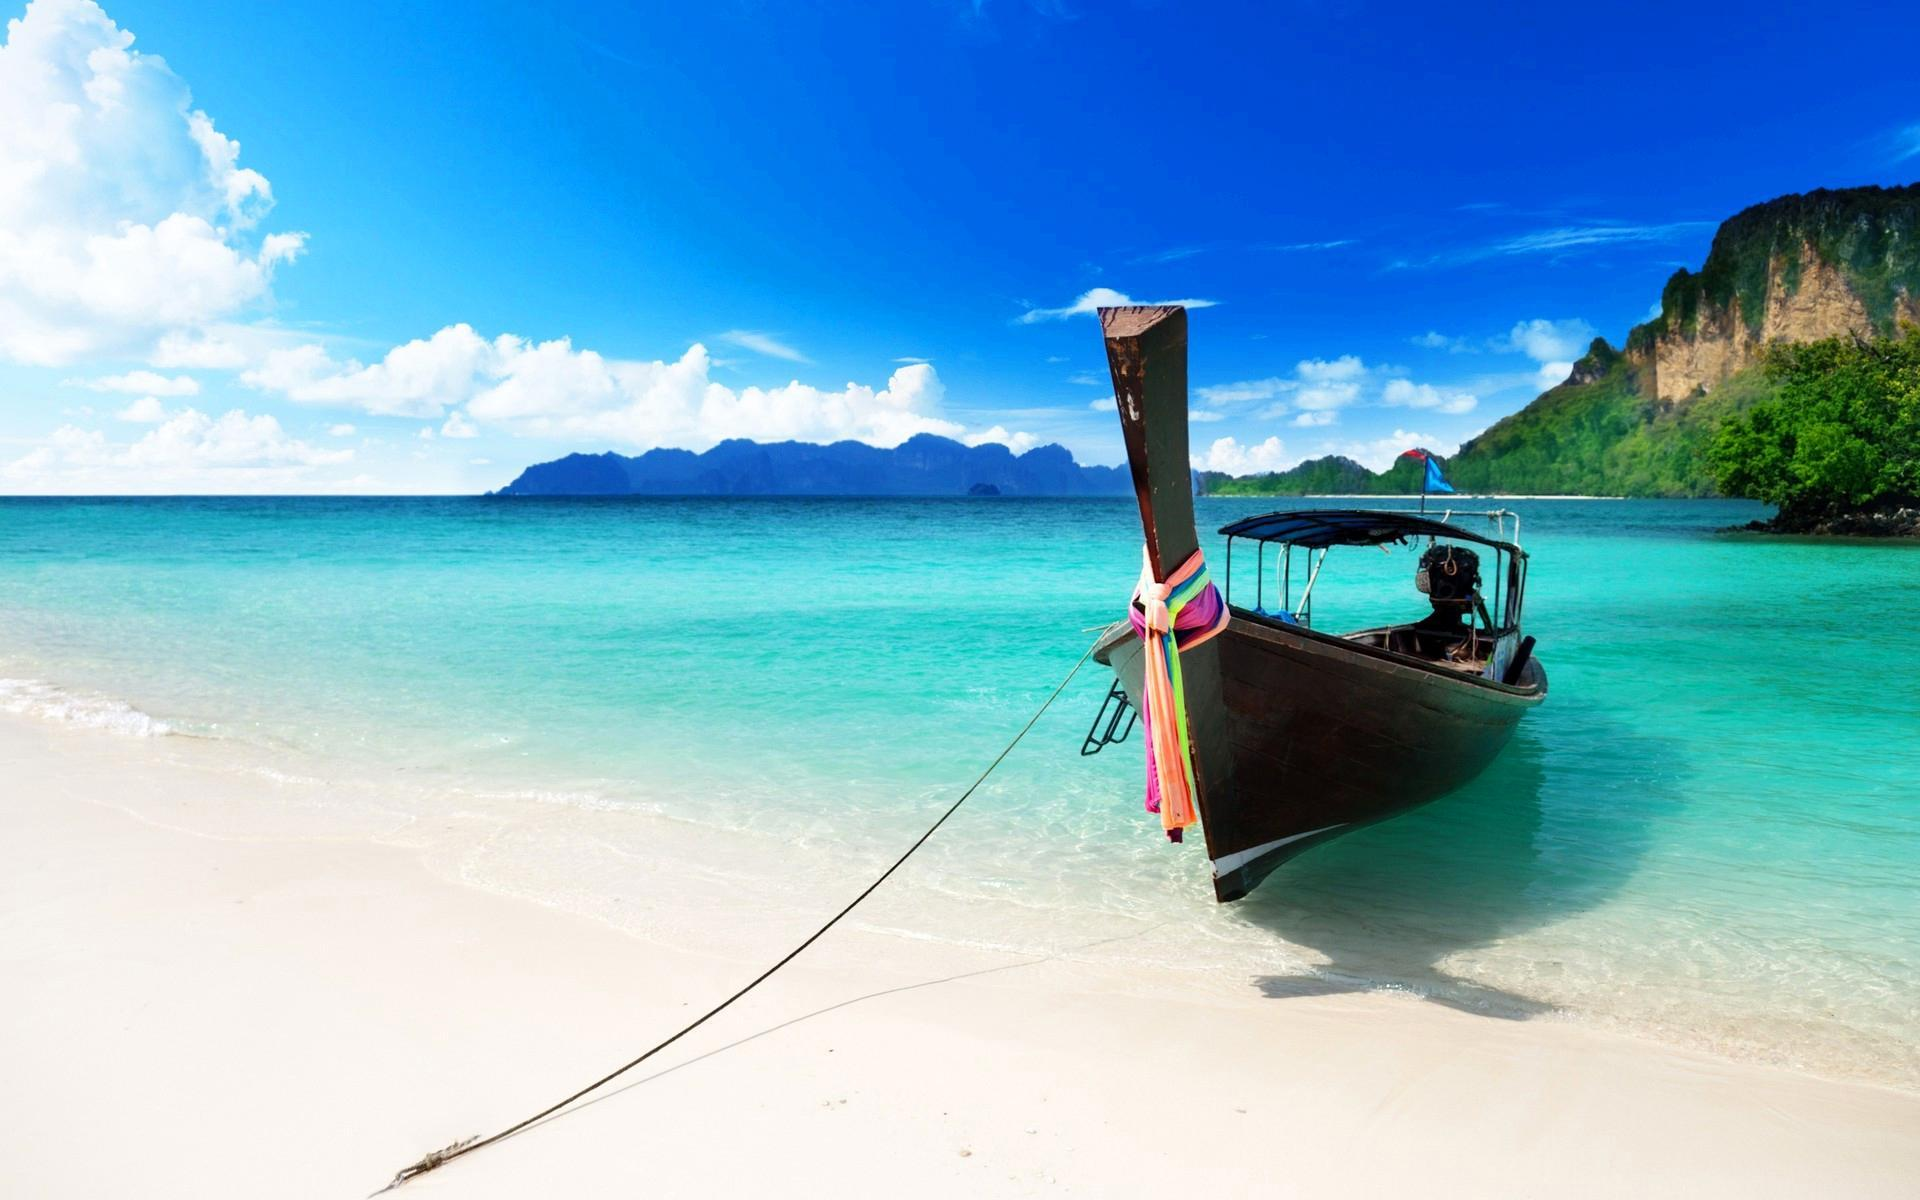 caribbean-boat-beach-hd-desktop-wallpapers